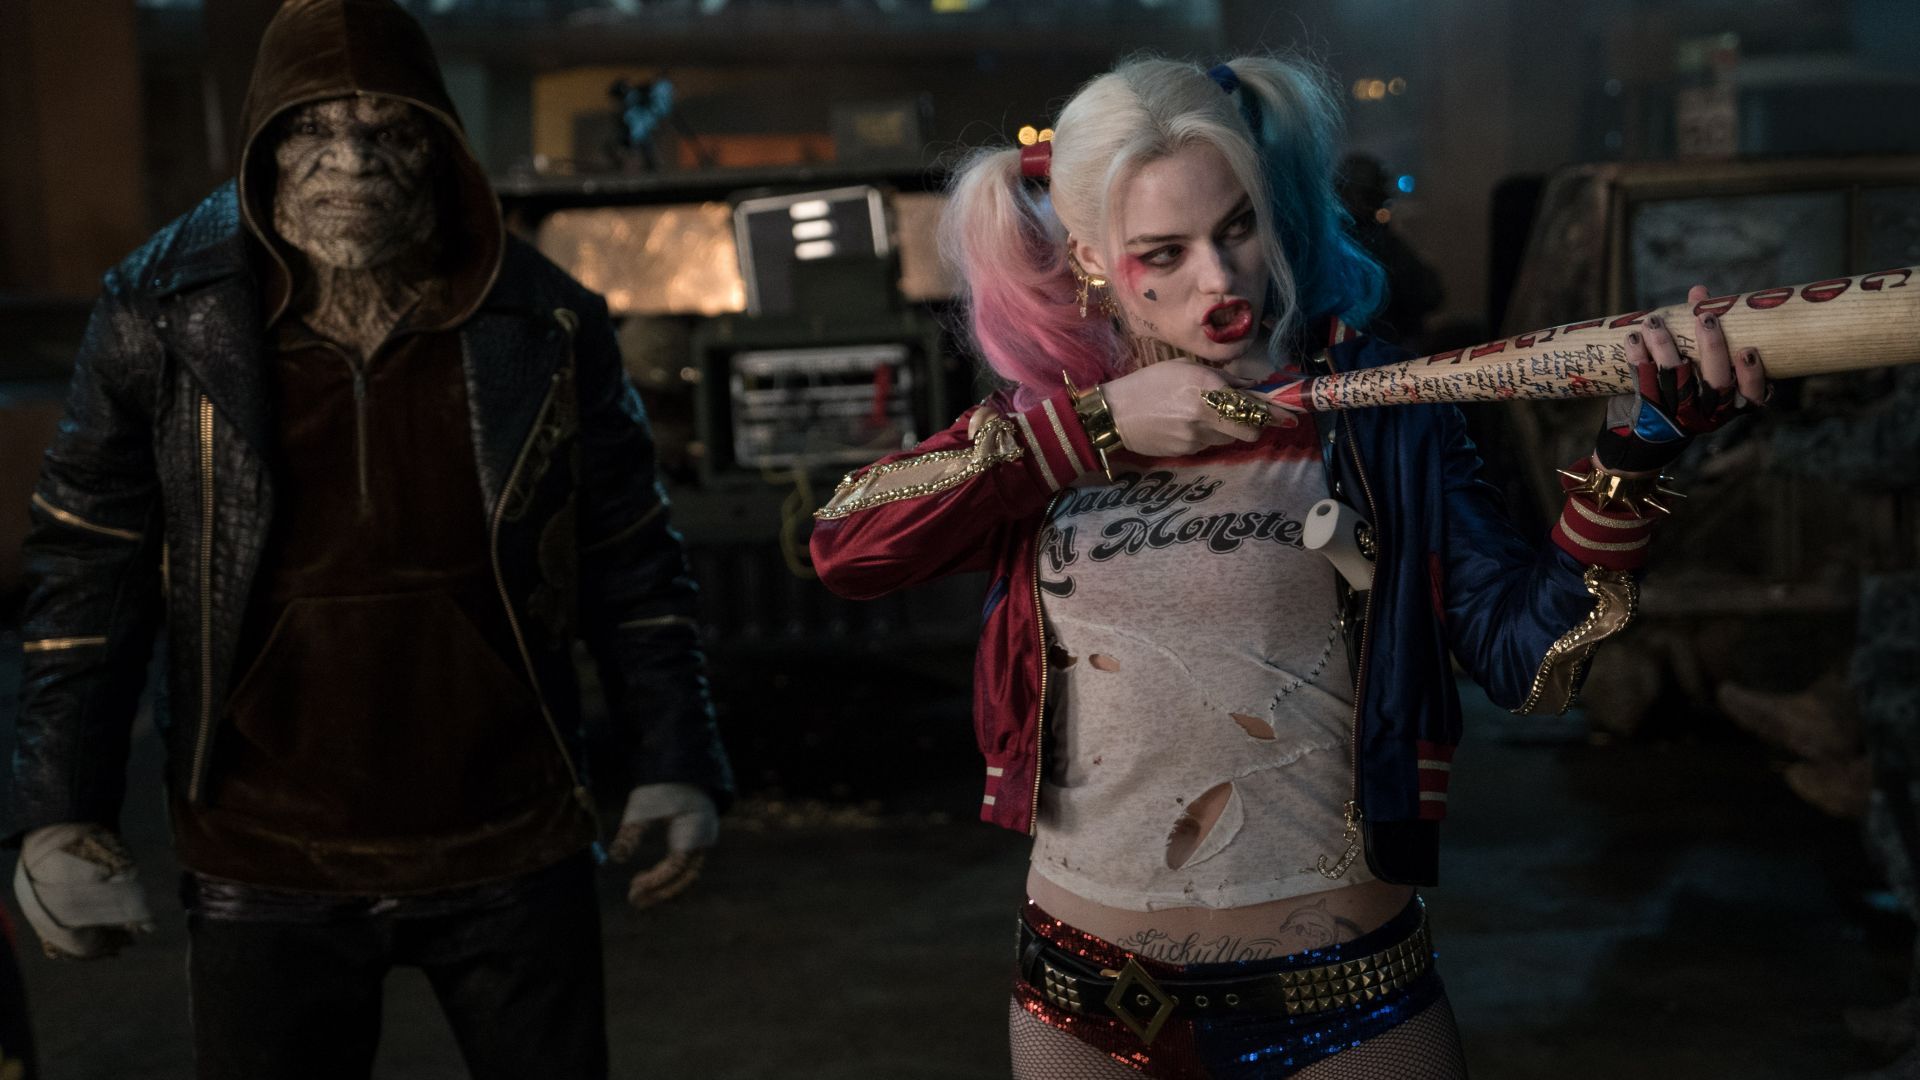 Suicide Squad, Harley Quinn, Killer Croc, Best Movies of 2016 (horizontal)